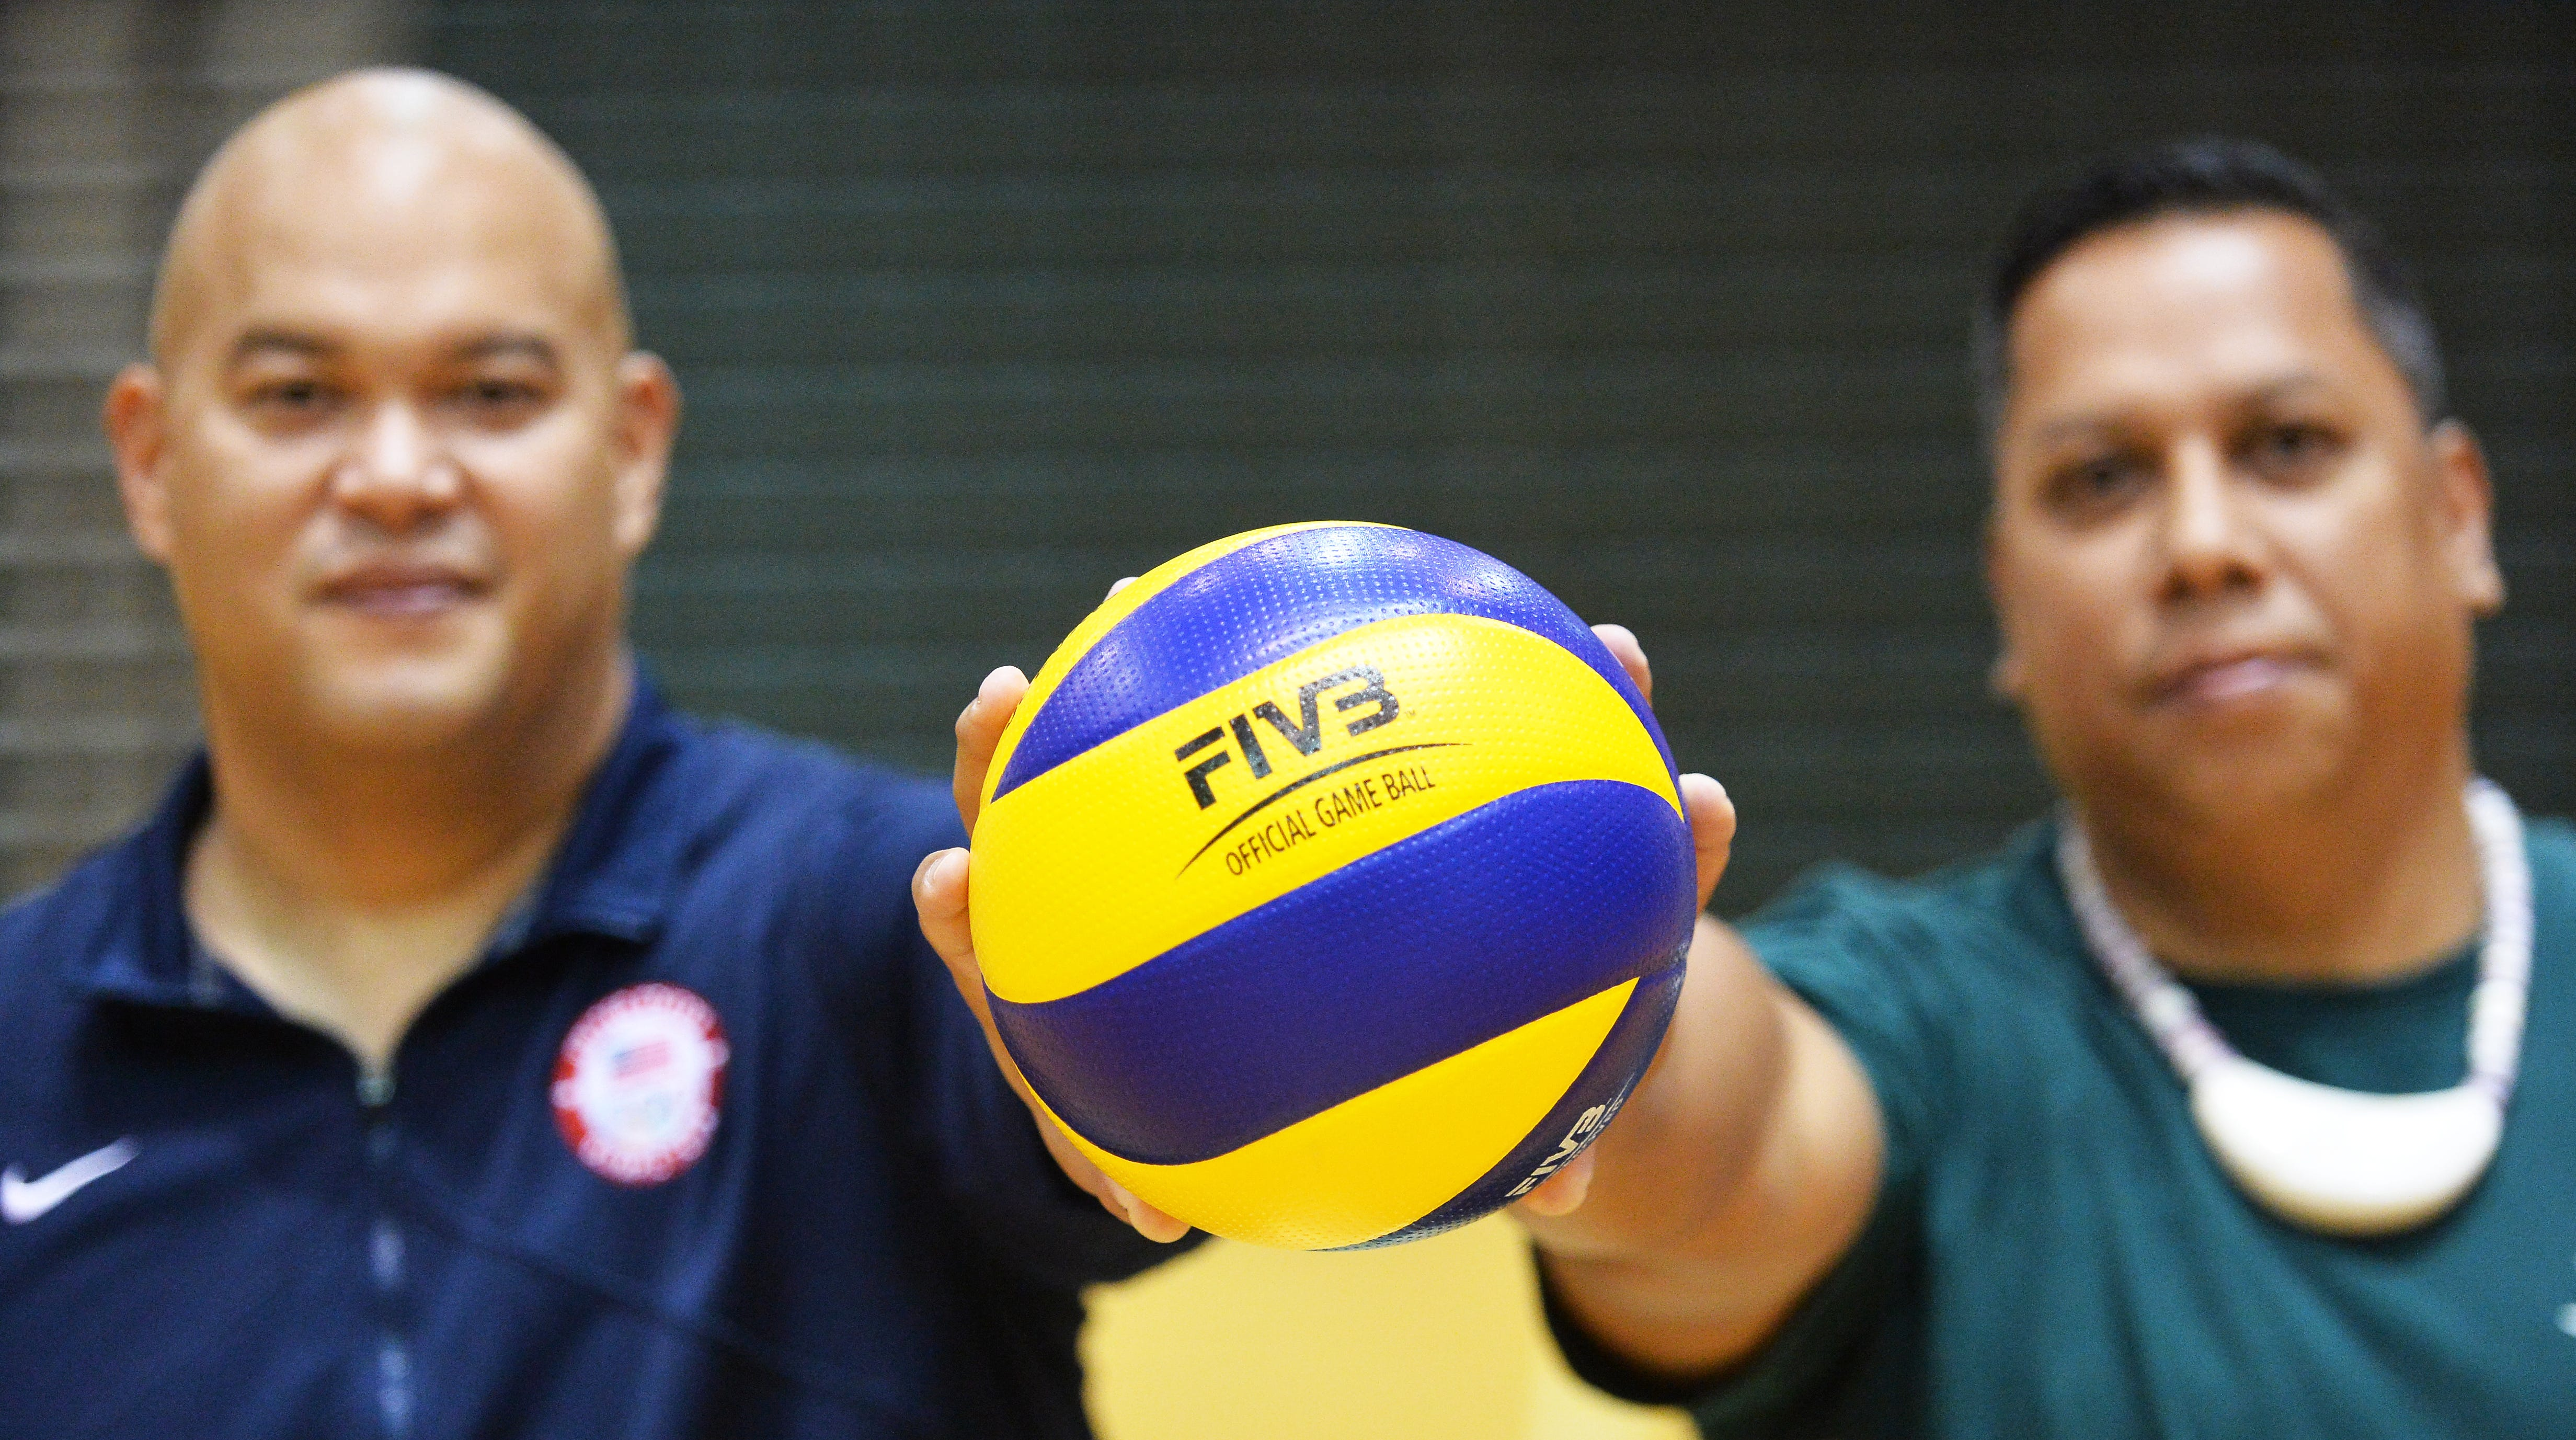 Mike Rabago, left and Joel Quitugua, head coaches for Guam's National Volleyball Teams are ready to take Guam to new heights in regional volleyball. All they need are 28 players with the right attitude.